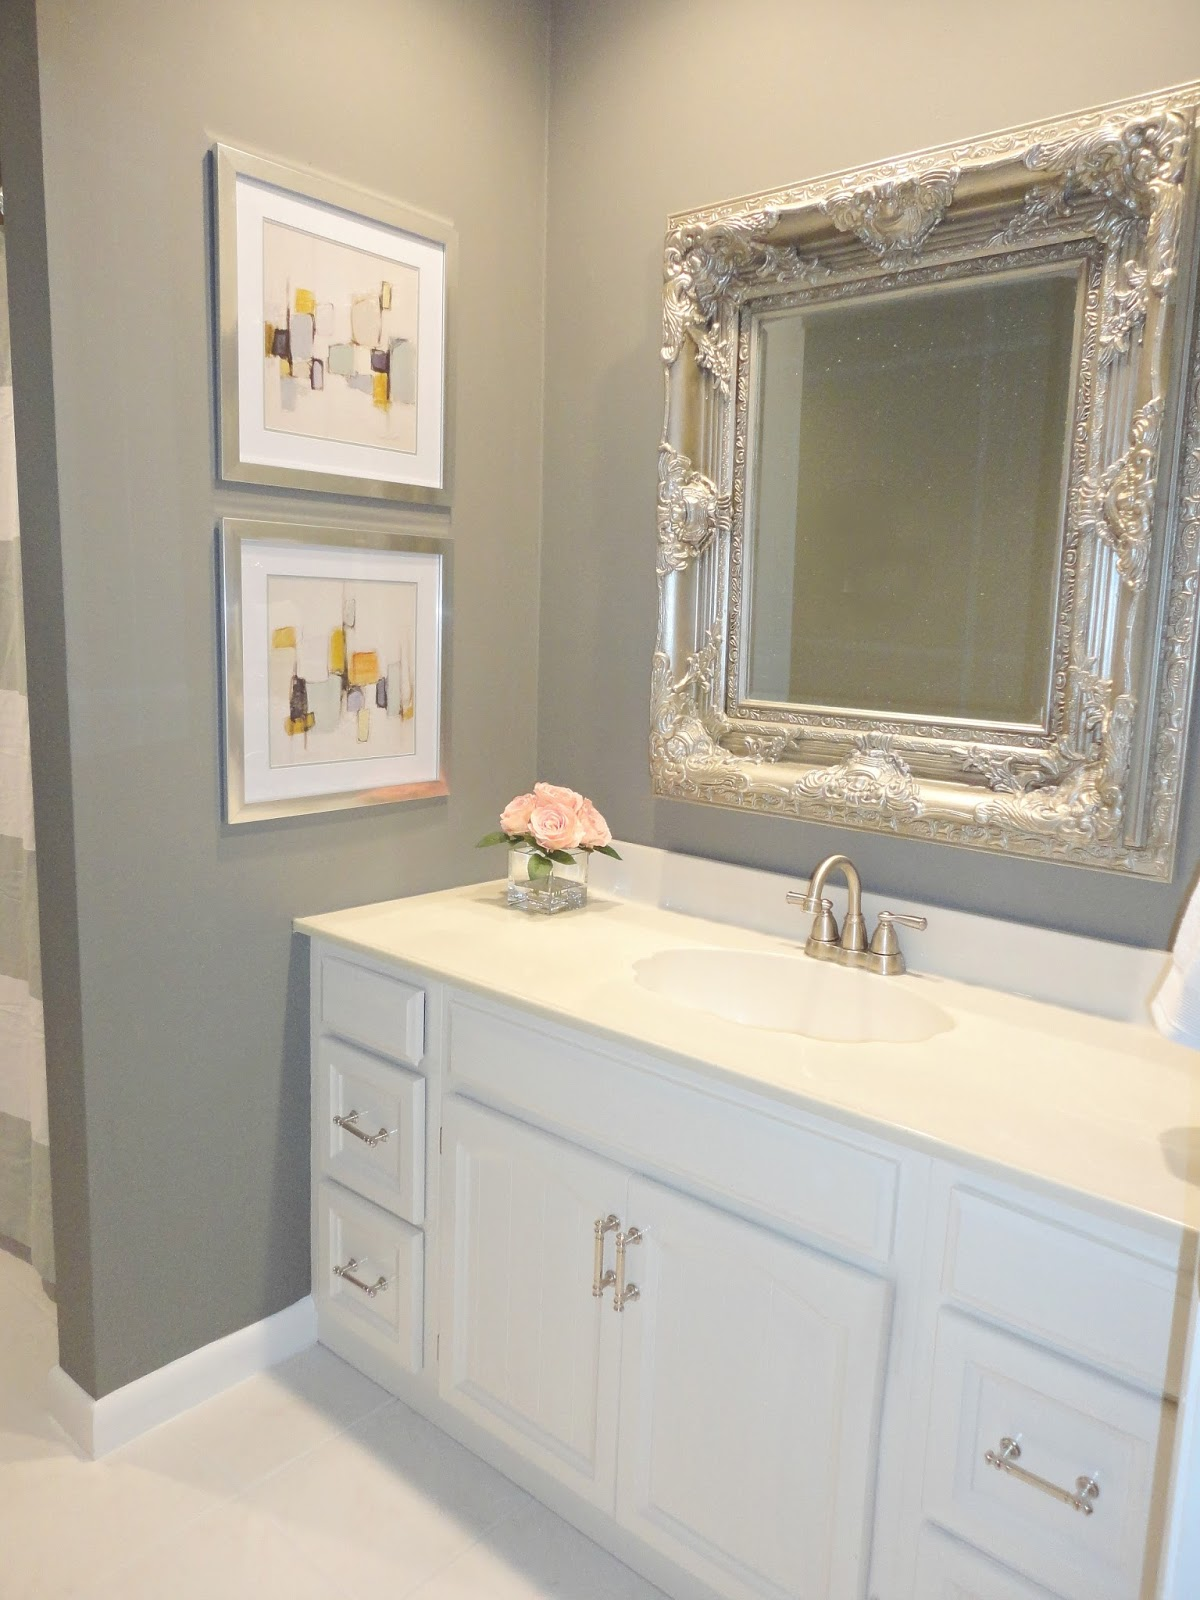 Bathroom Vanity Remodel livelovediy: diy bathroom remodel on a budget